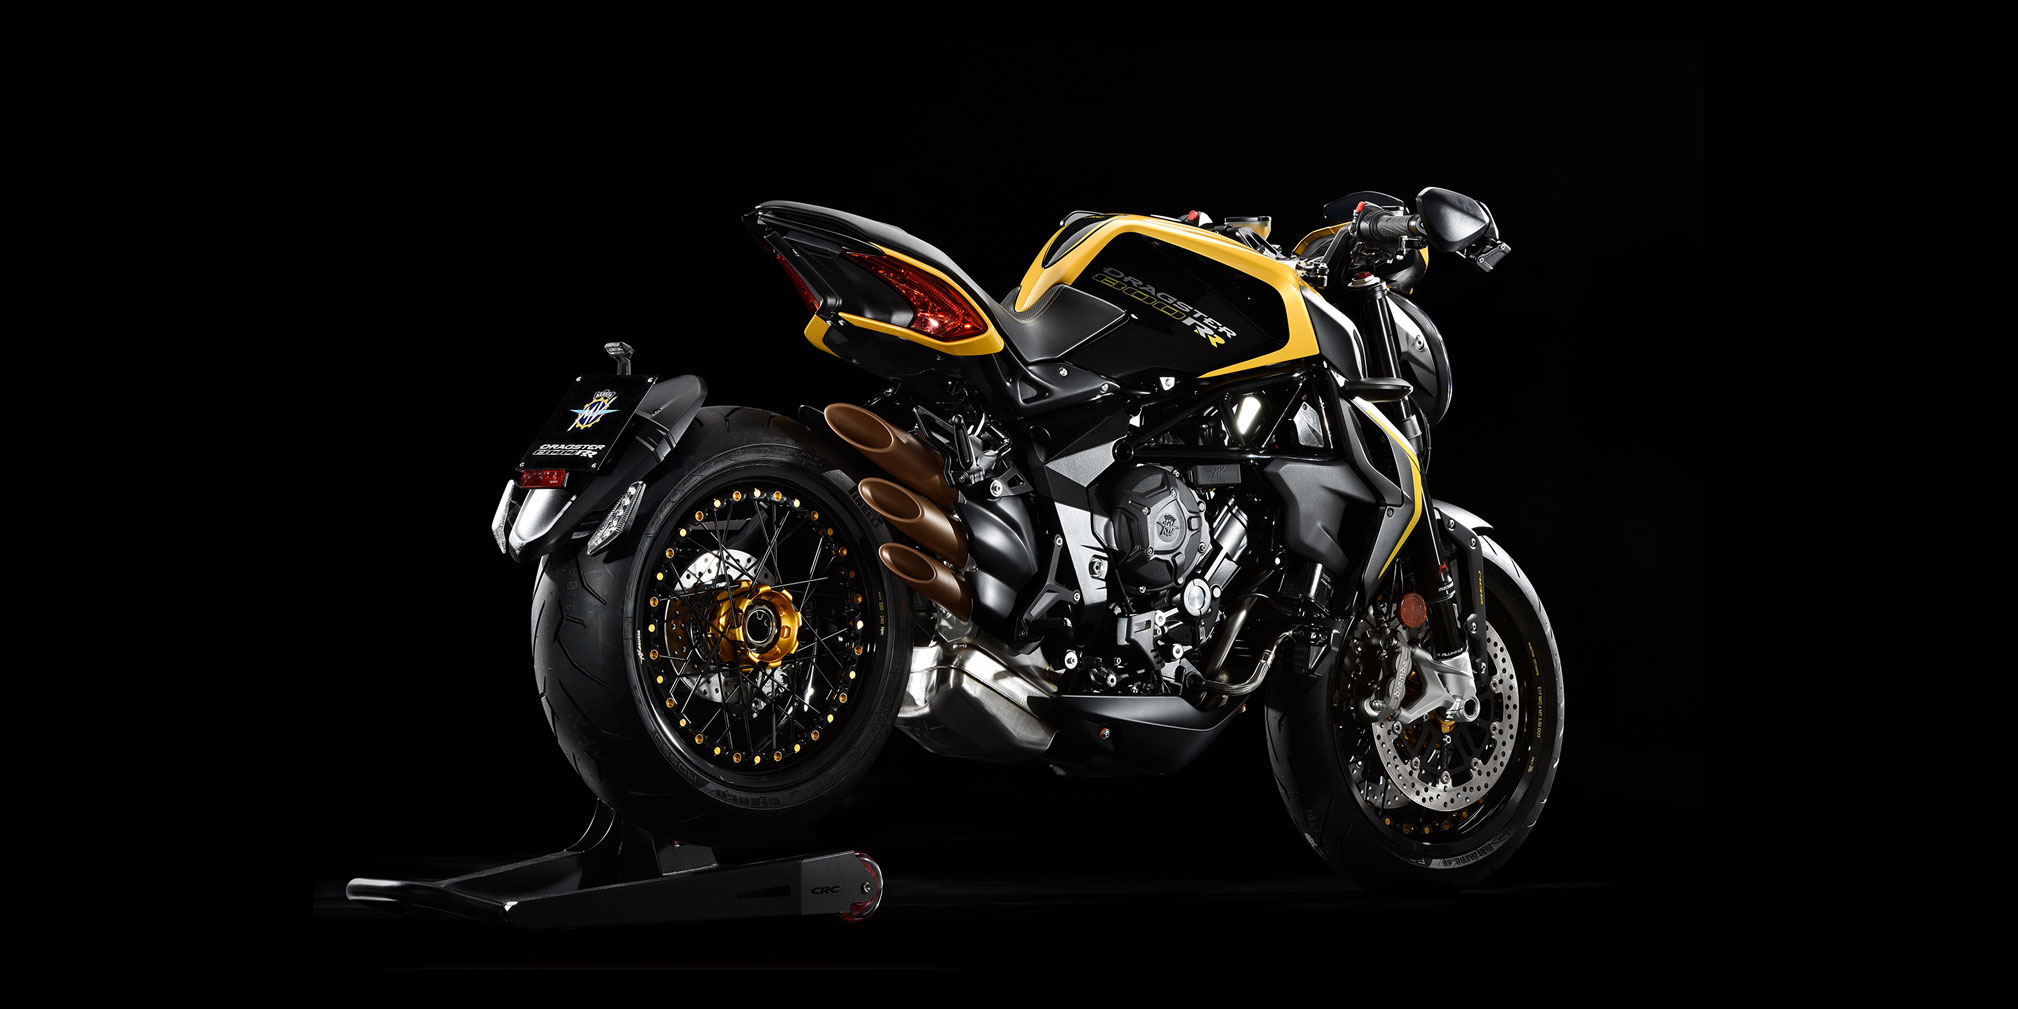 2018 mv agusta dragster 800 rr review totalmotorcycle. Black Bedroom Furniture Sets. Home Design Ideas